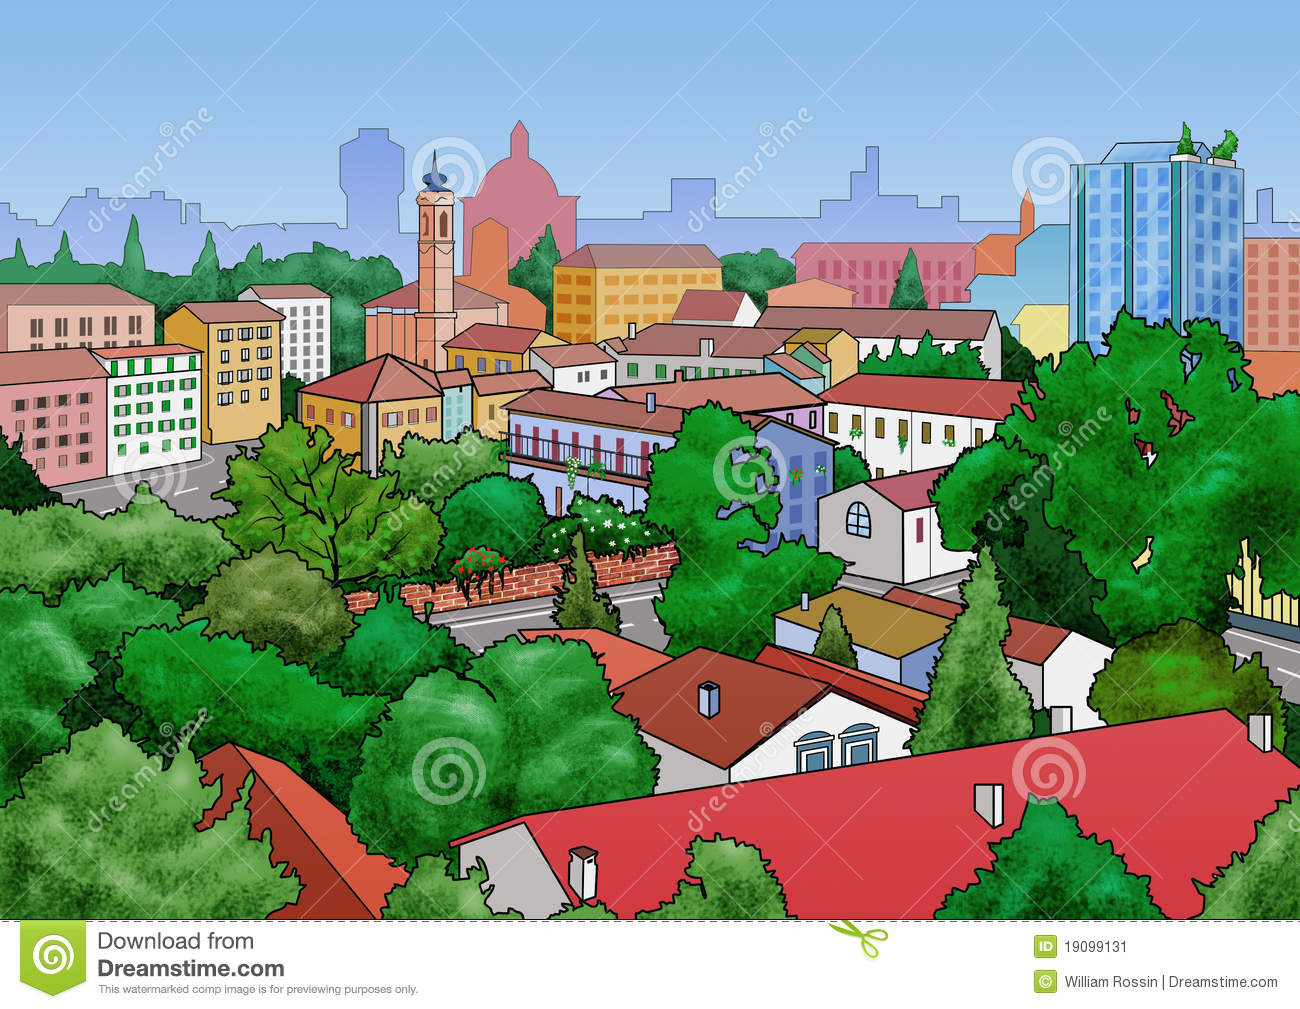 Town Landscape Vector Illustration: Small Town Landscape Stock Illustration. Illustration Of